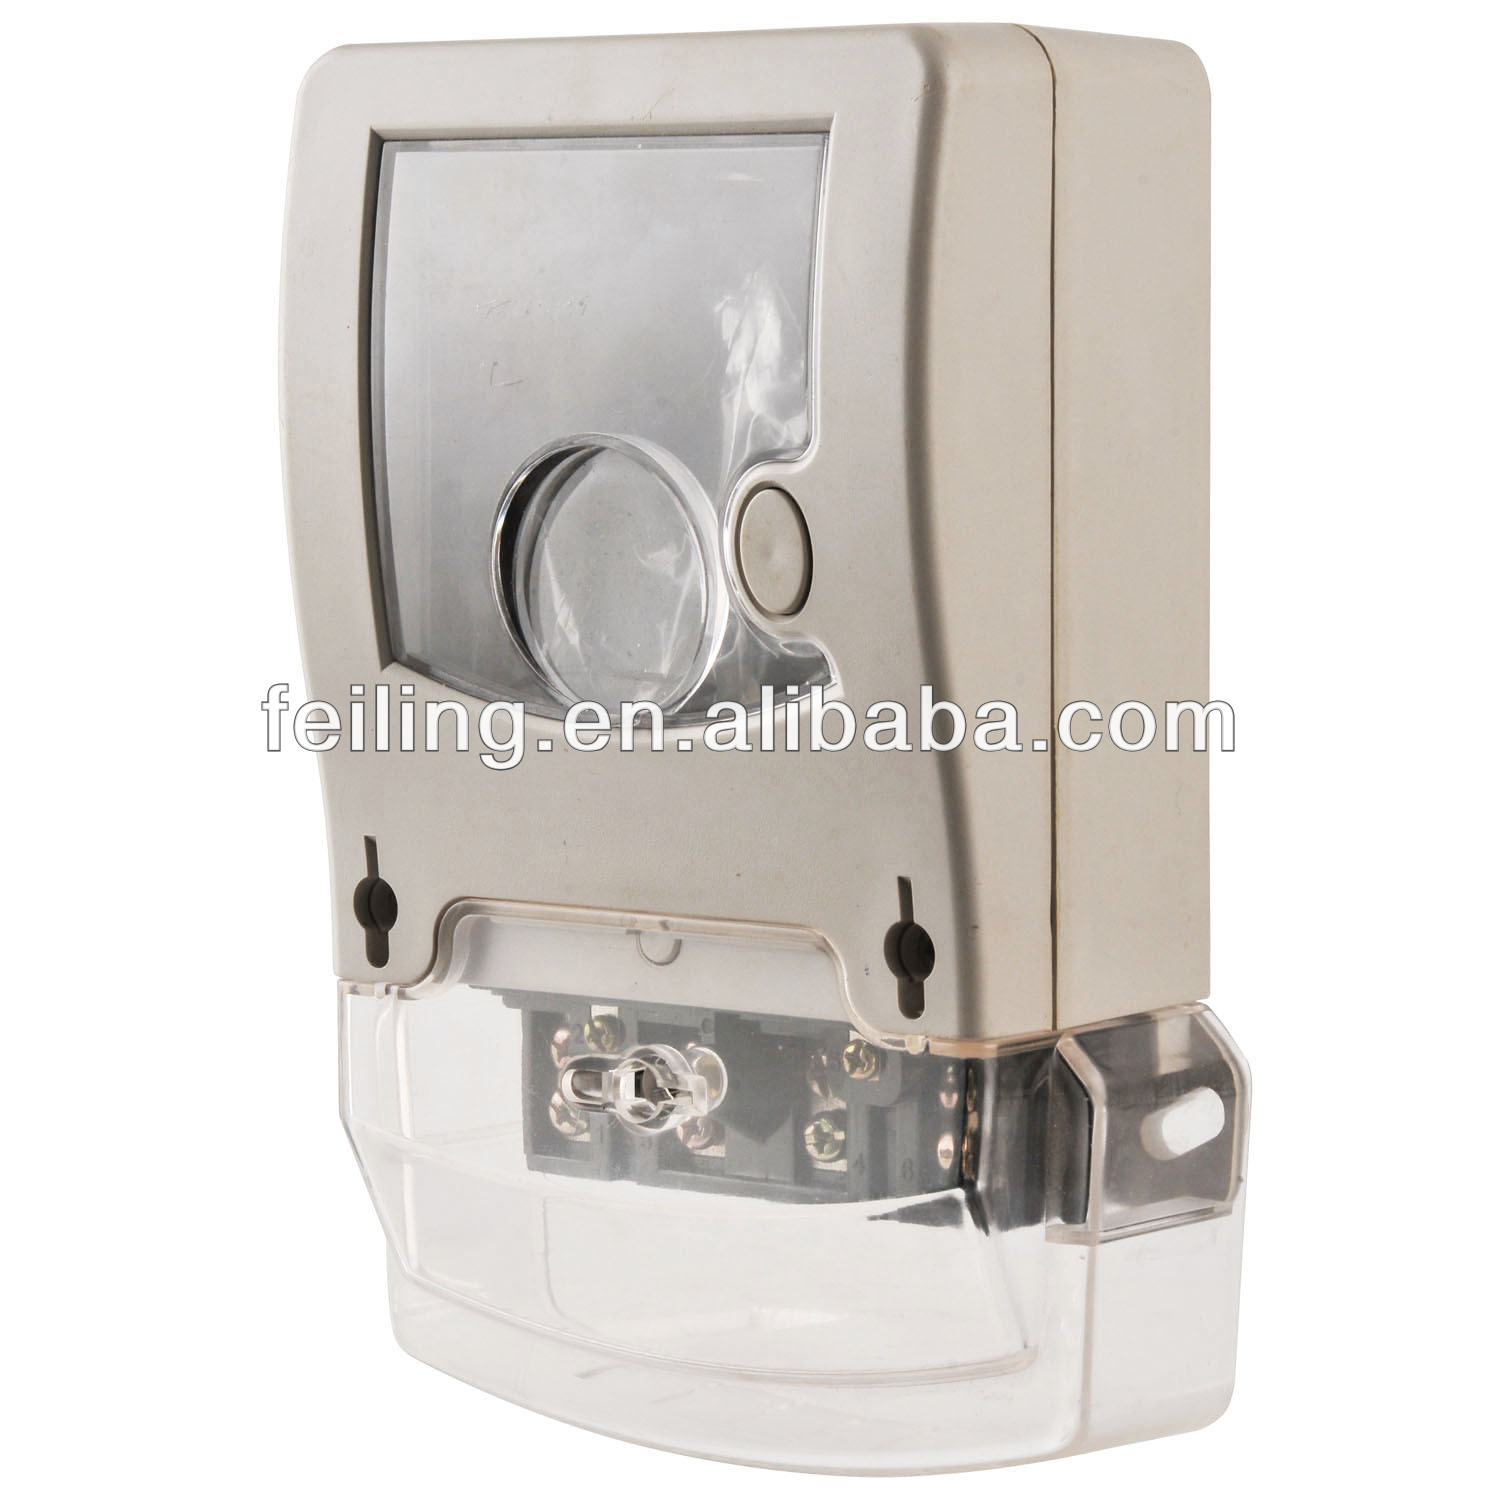 DDS-009-3 single-phase ip54 outdoor electronic junction meter case